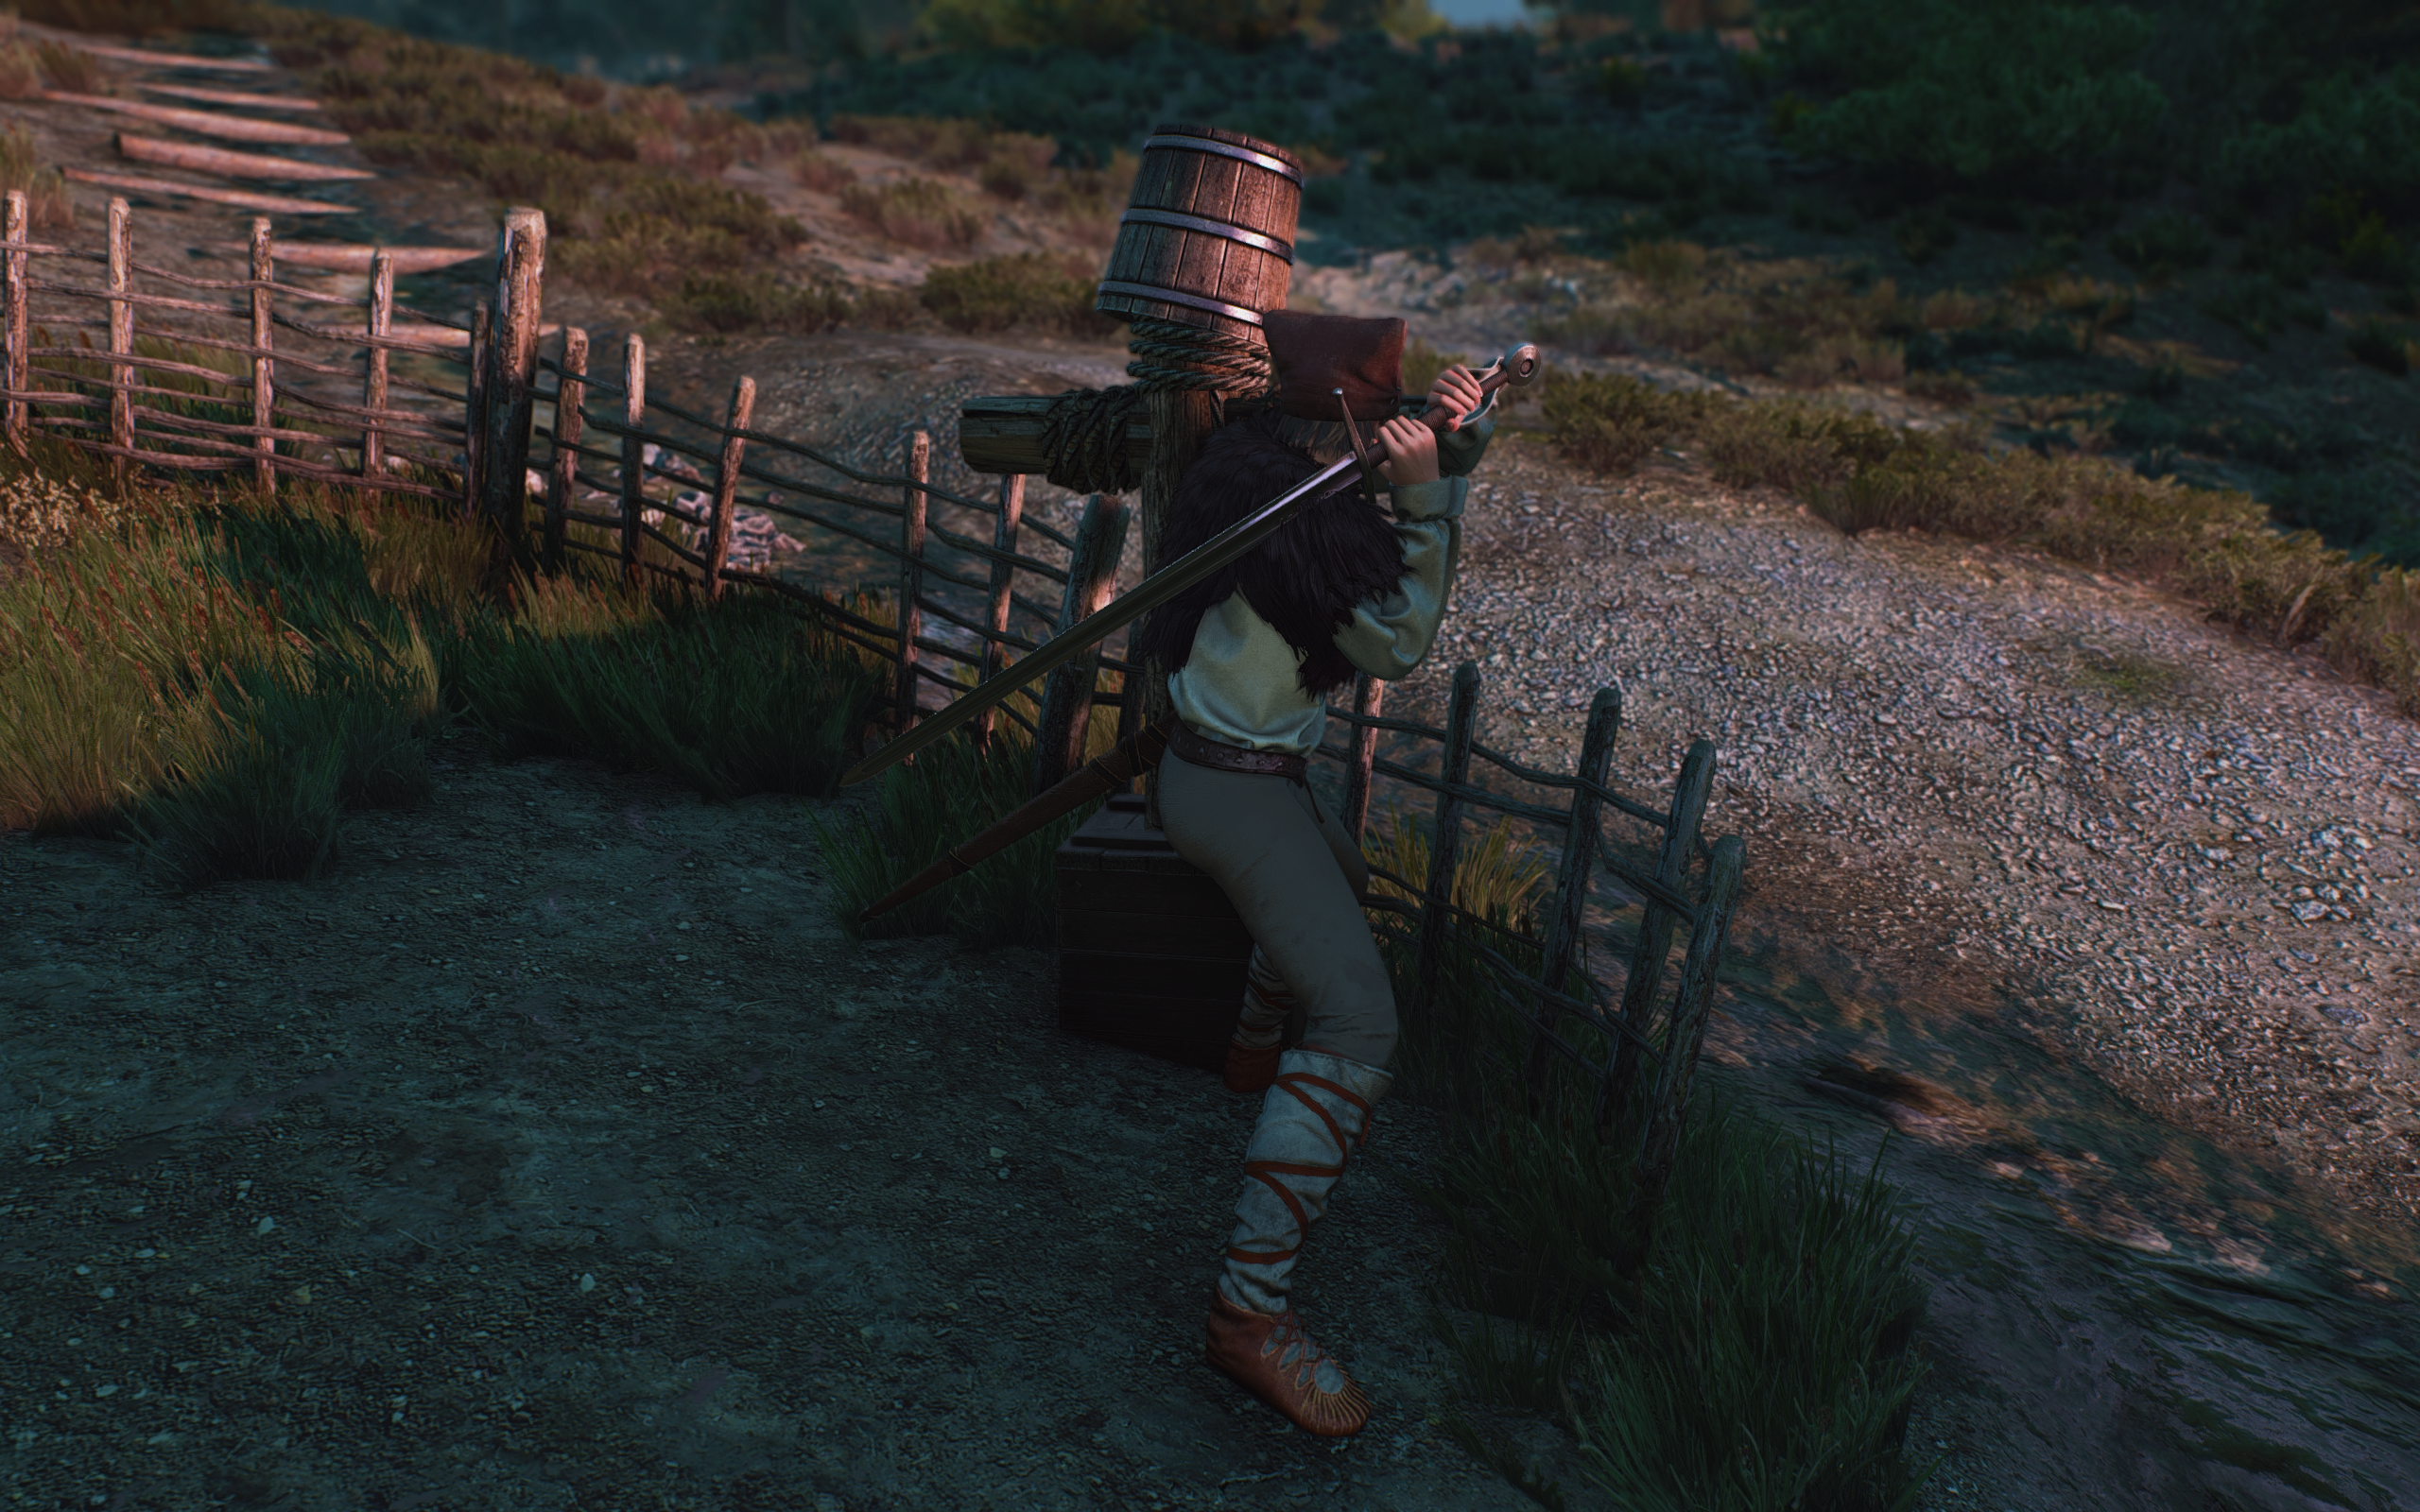 b/bc/bc567b86_witcher32015-12-2603-24-41.png